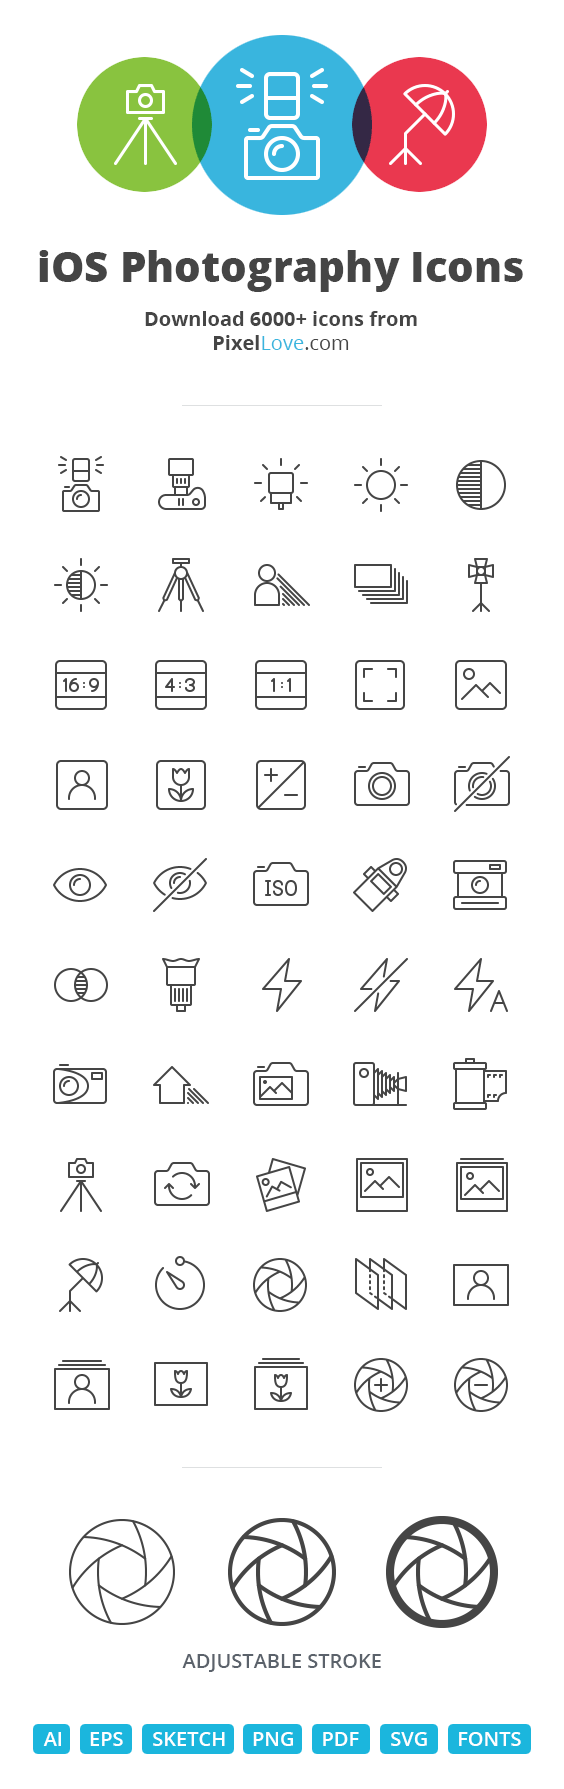 5000 ios icons arguably the largest ios icon pack available 5000 ios icons arguably the largest ios icon pack available including both line